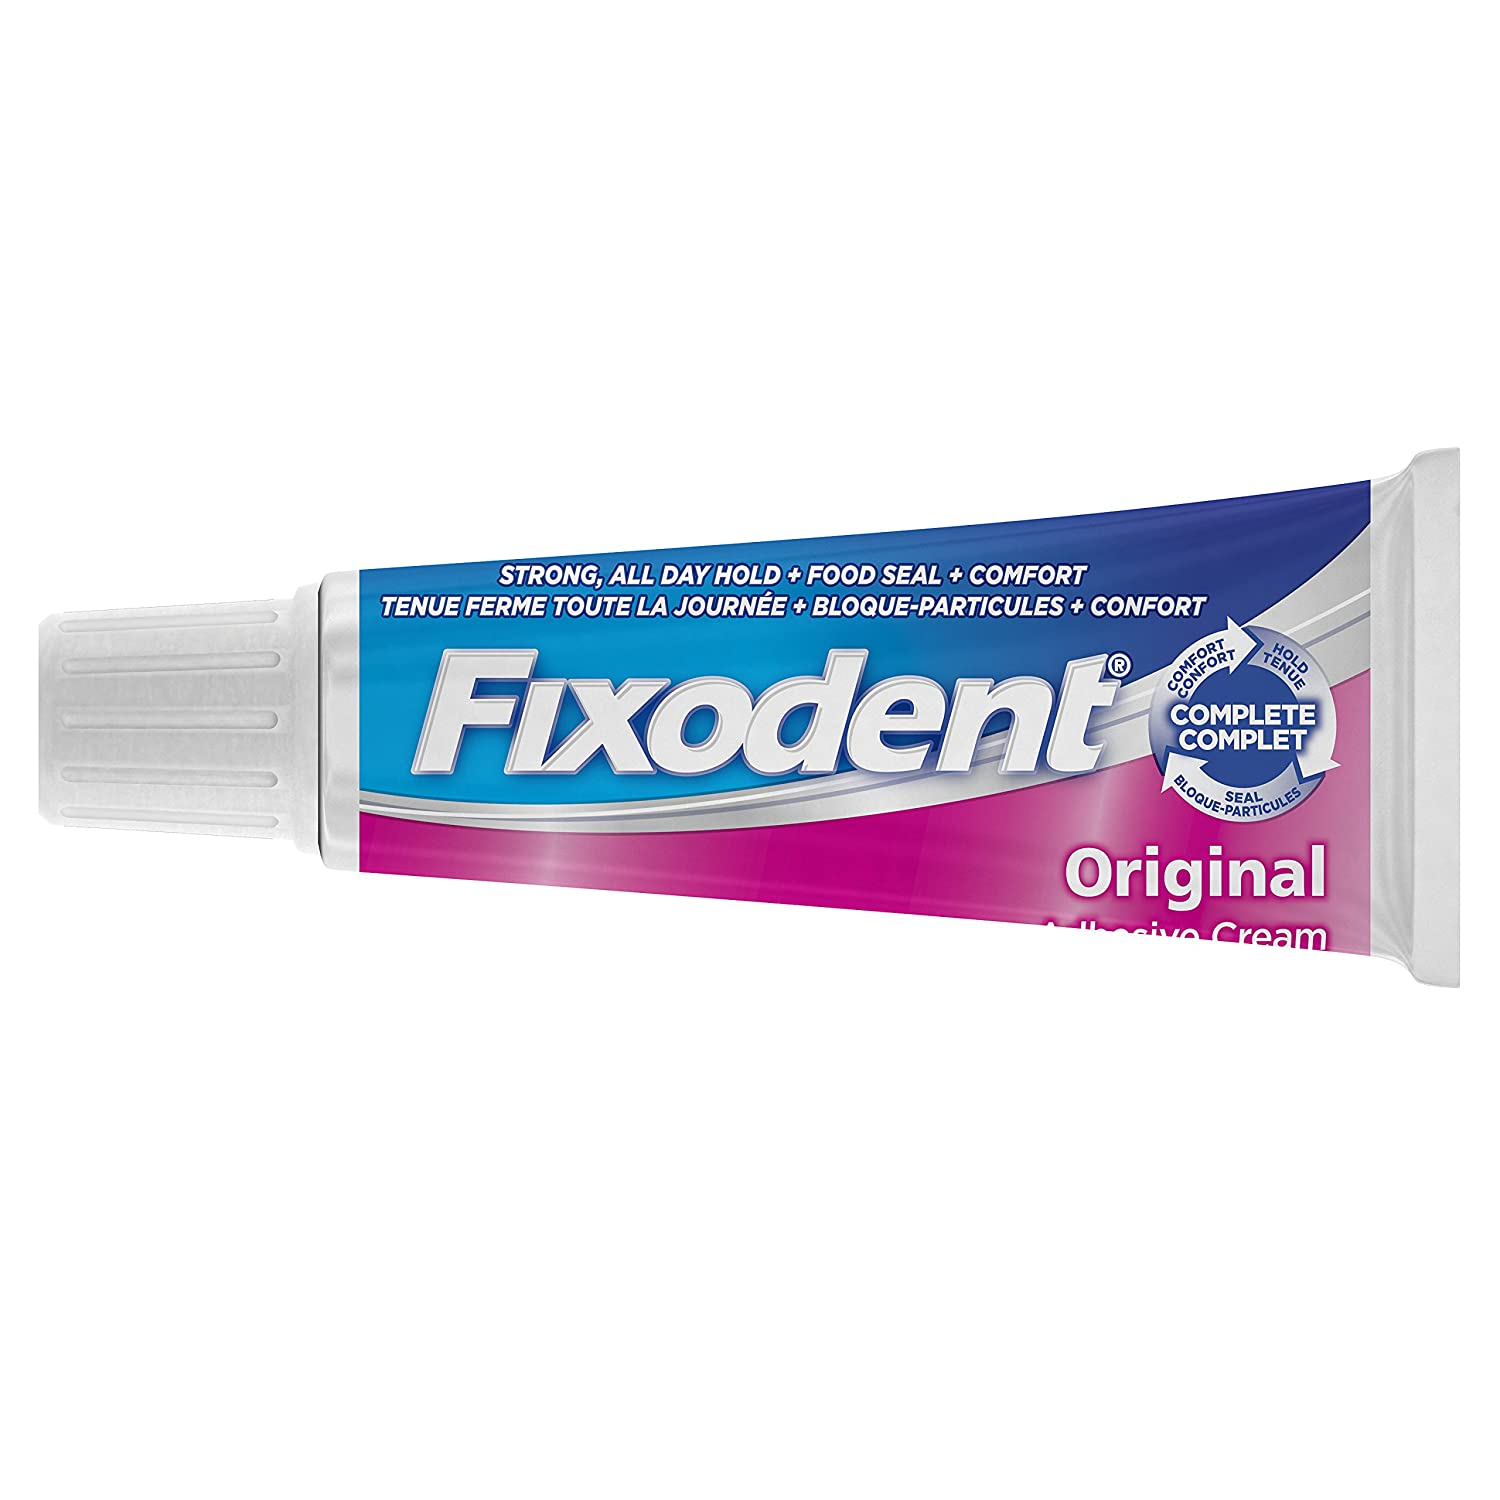 Fixodent Complete Original Denture Adhesive Cream,40g, packaging may vary